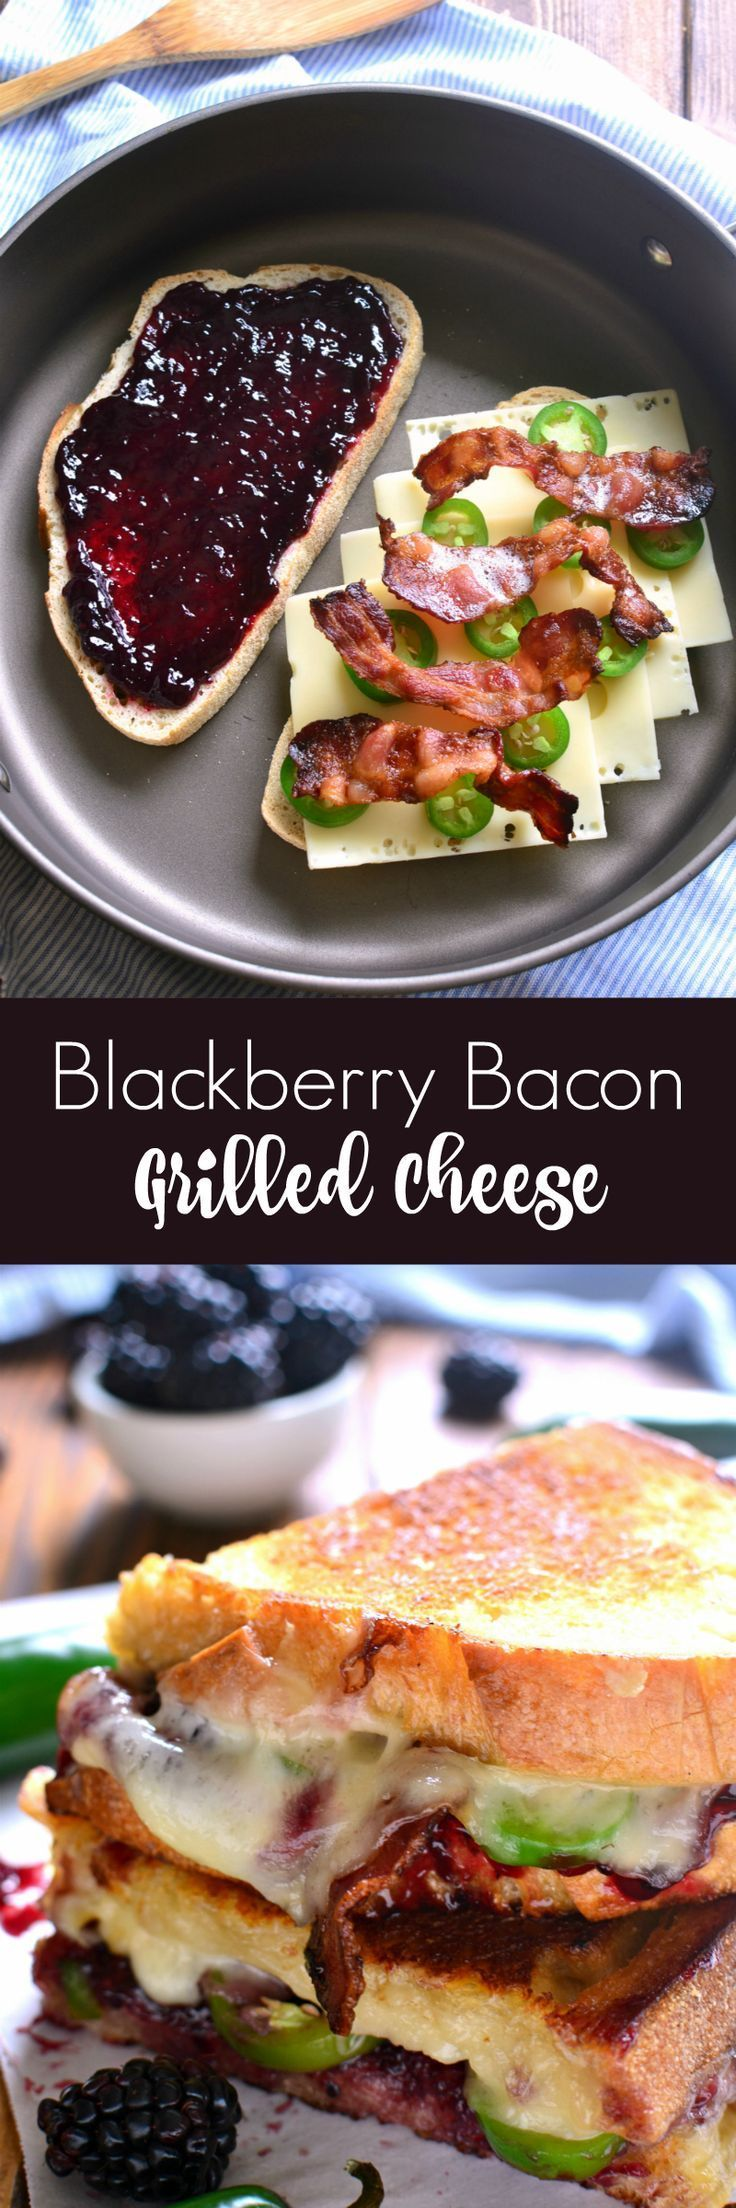 This Blackberry Bacon Grilled Cheese is the perfect combination of savory and sweet! Swiss cheese, blackberry jam, bacon, and jalapeños! I need this with low carb bread!